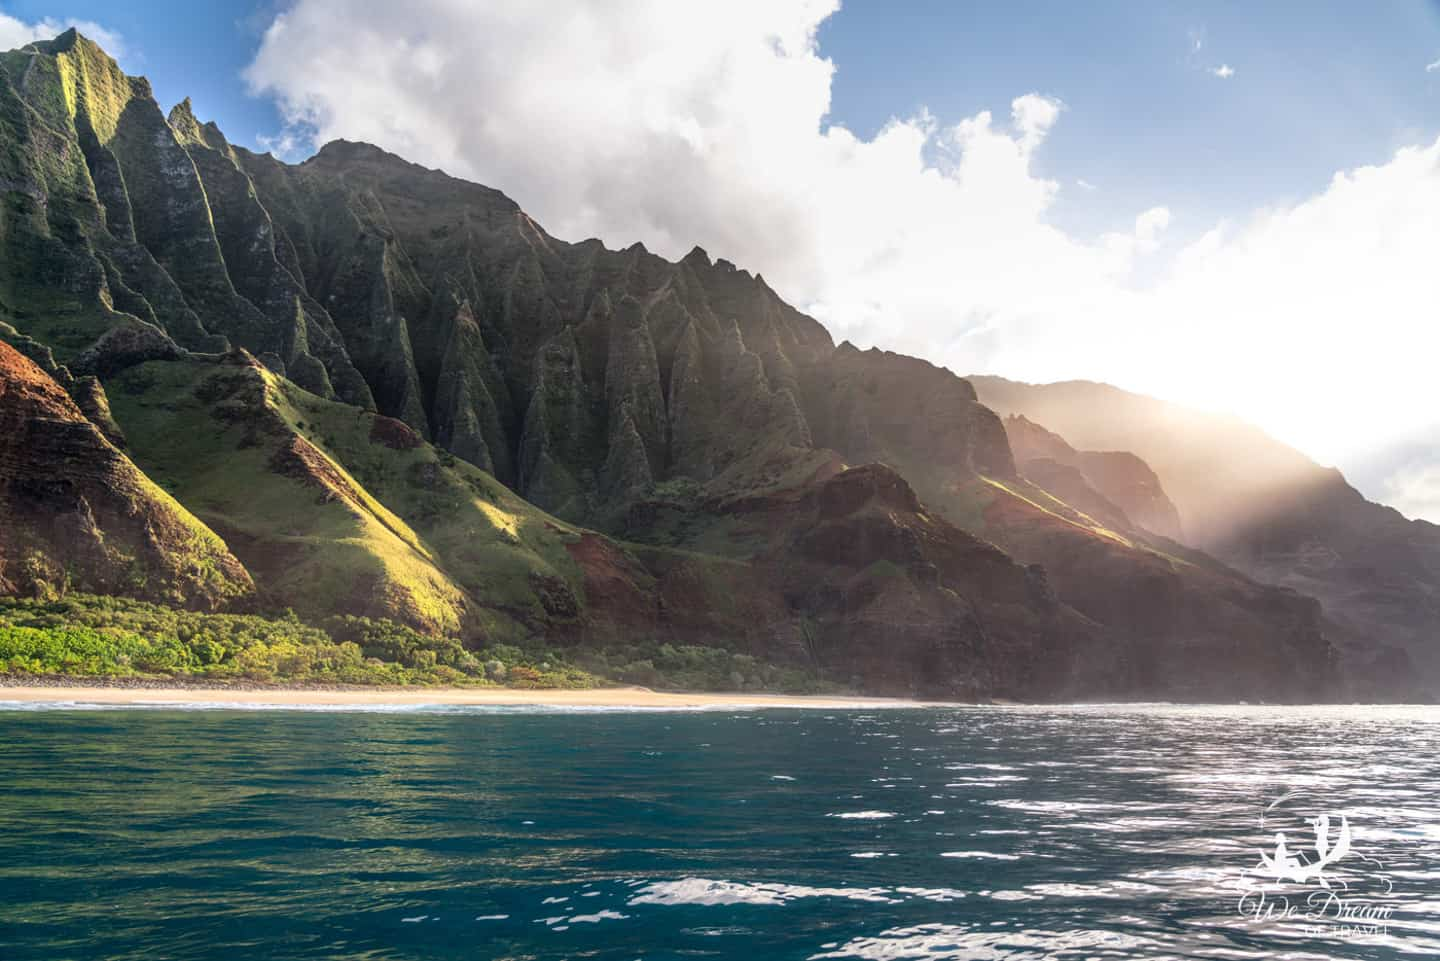 View of the Nepali Coast in Kauai from the water.